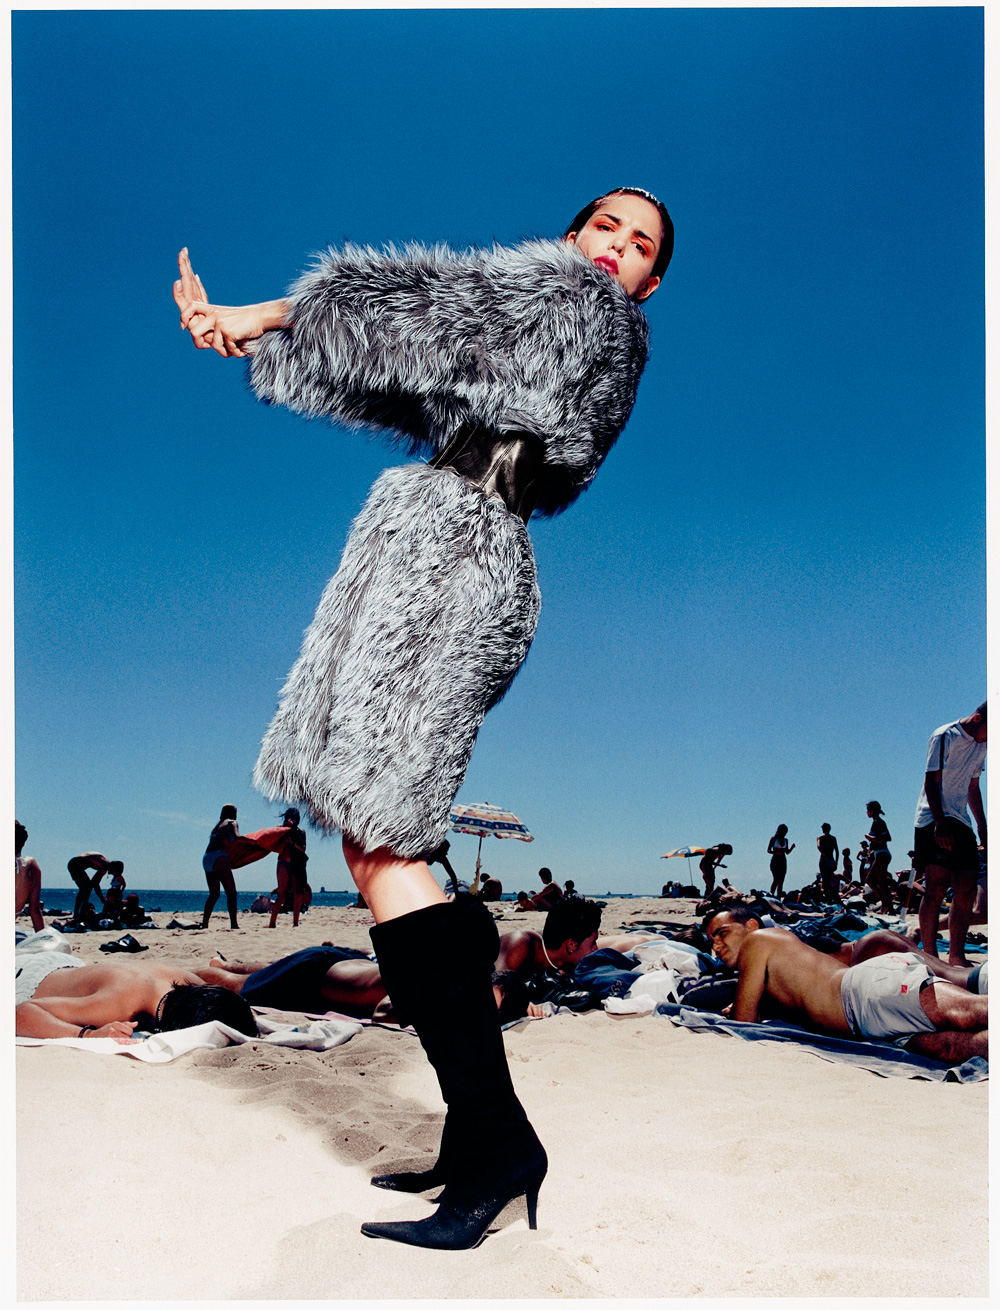 Fur coats on Carcavelos beach, shot in June probably!